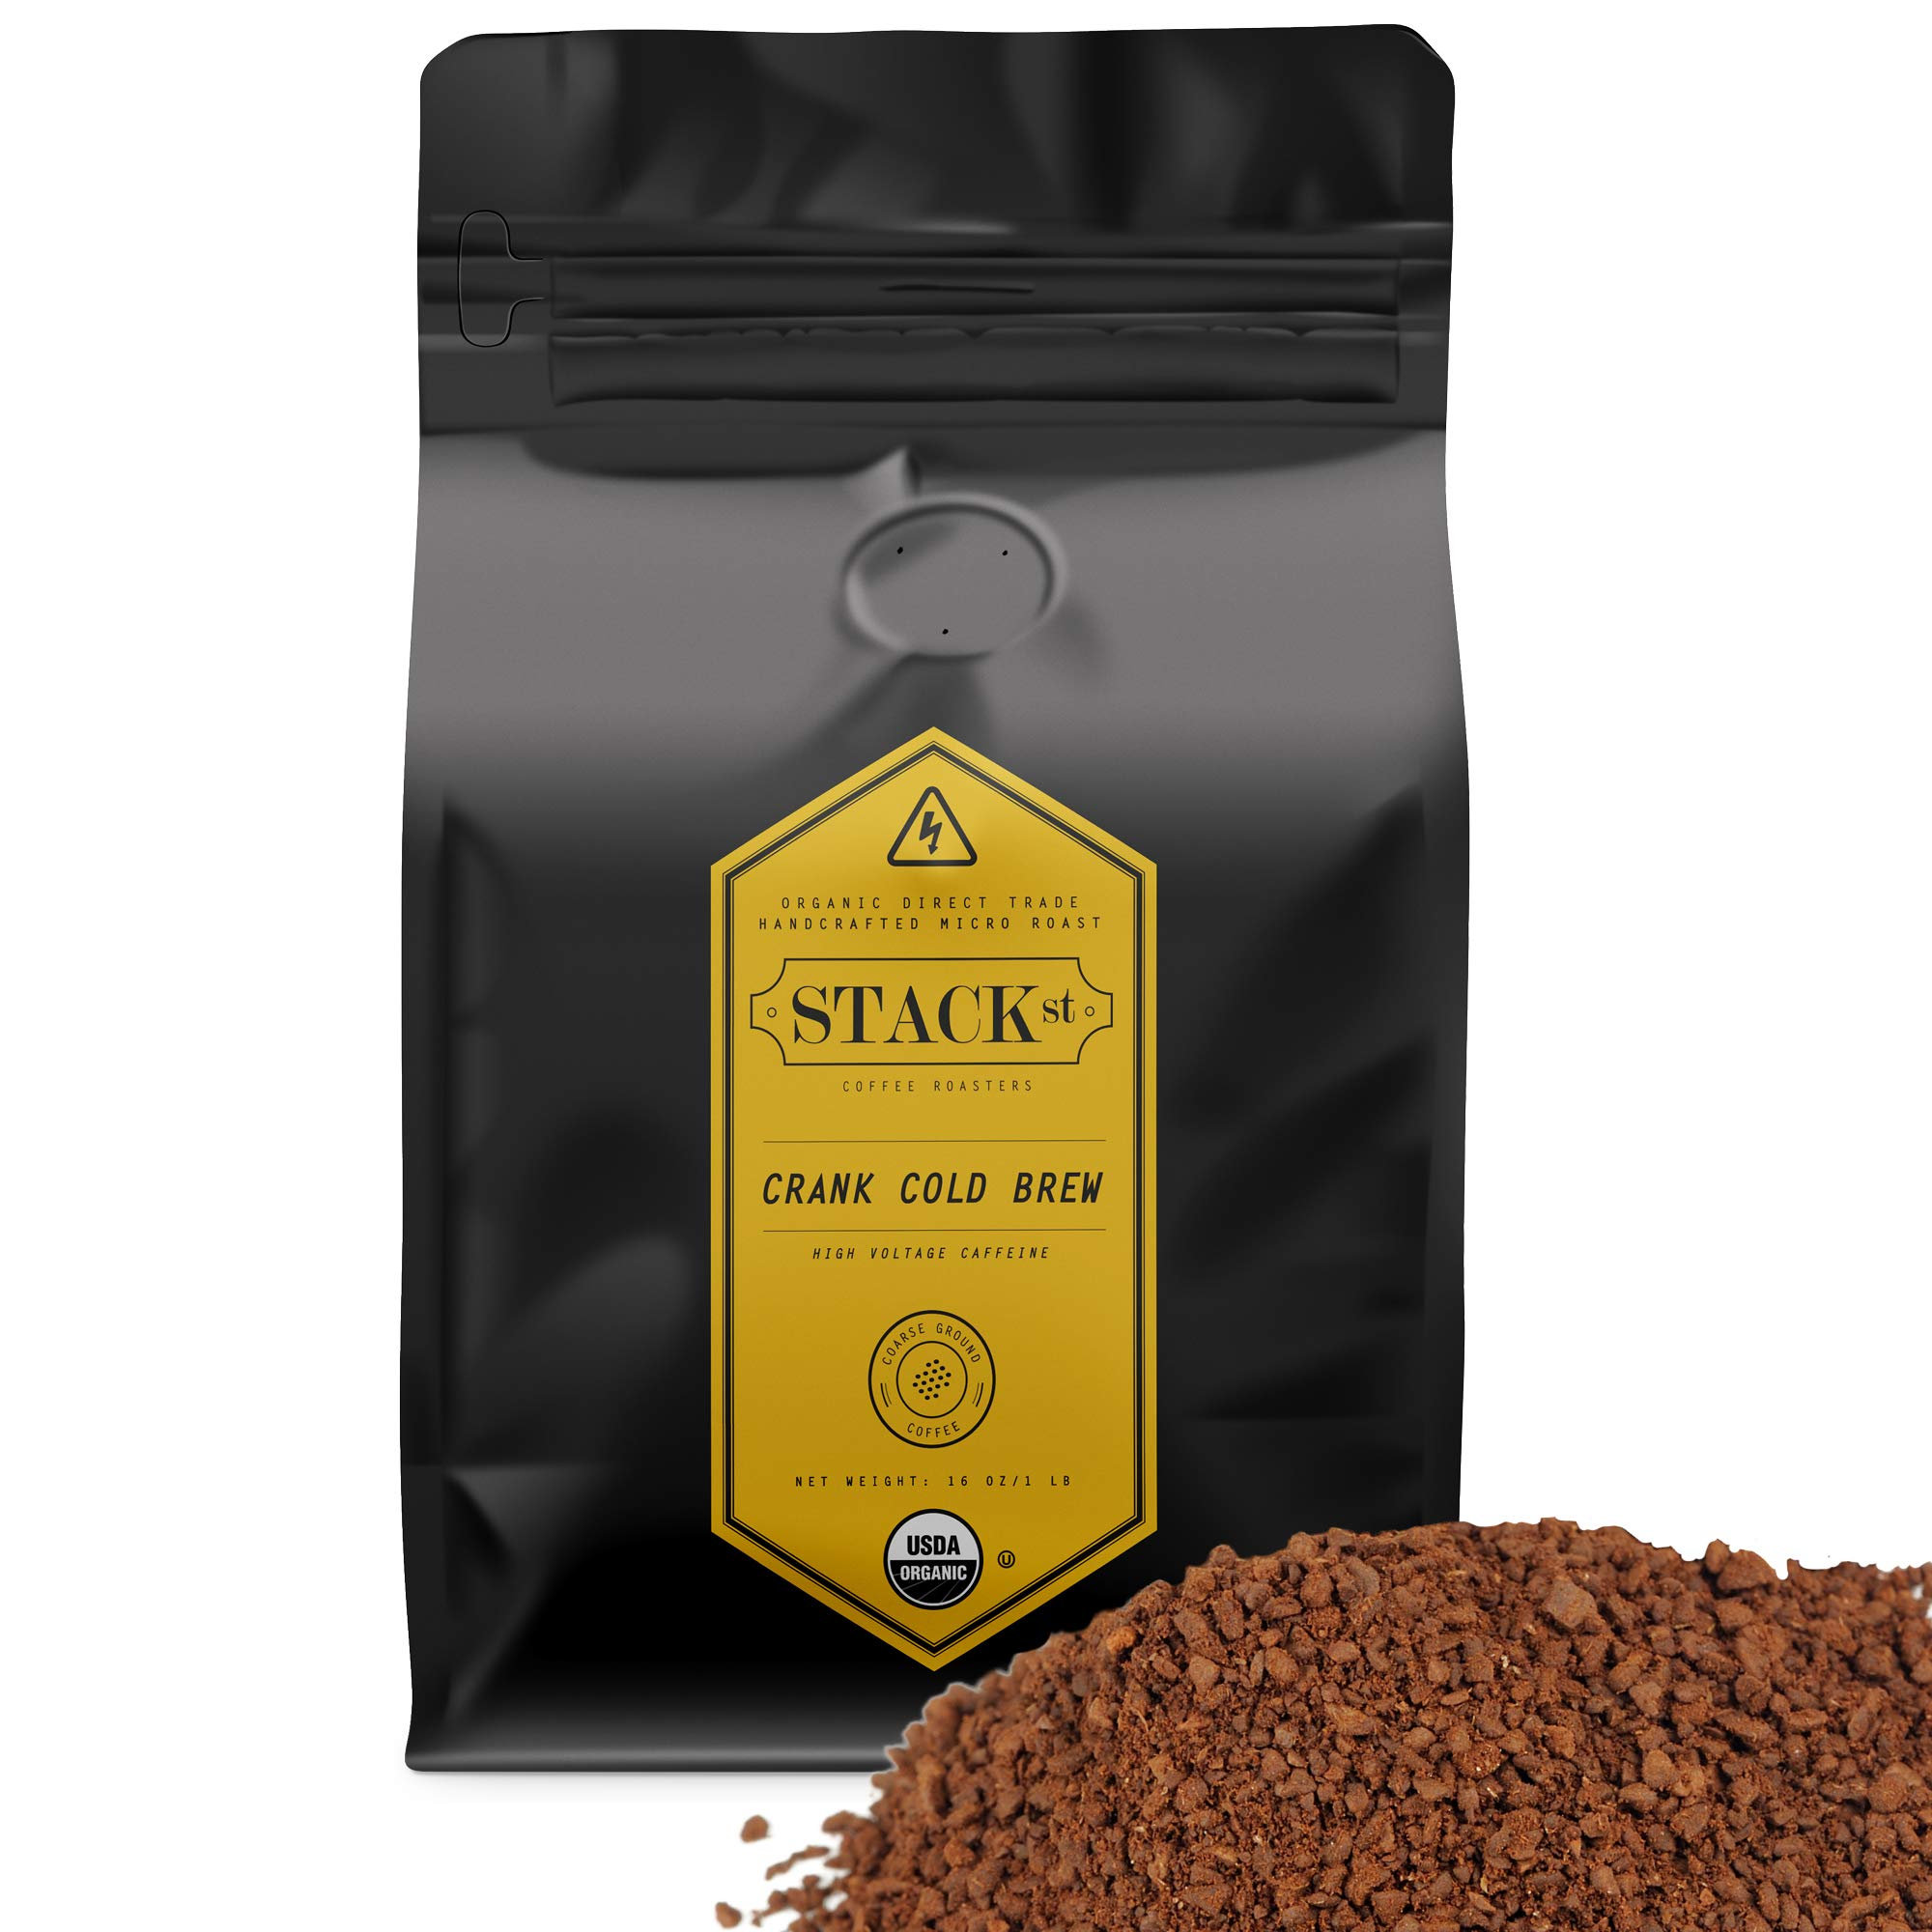 Organic Cold Brew Coffee Grounds, 1 lbs - CRANK High Voltage Caffeine Flavor Dark Roast, Coarse Grind - Handcrafted, Single Origin, Micro Roast, Direct Trade - By Stack Street